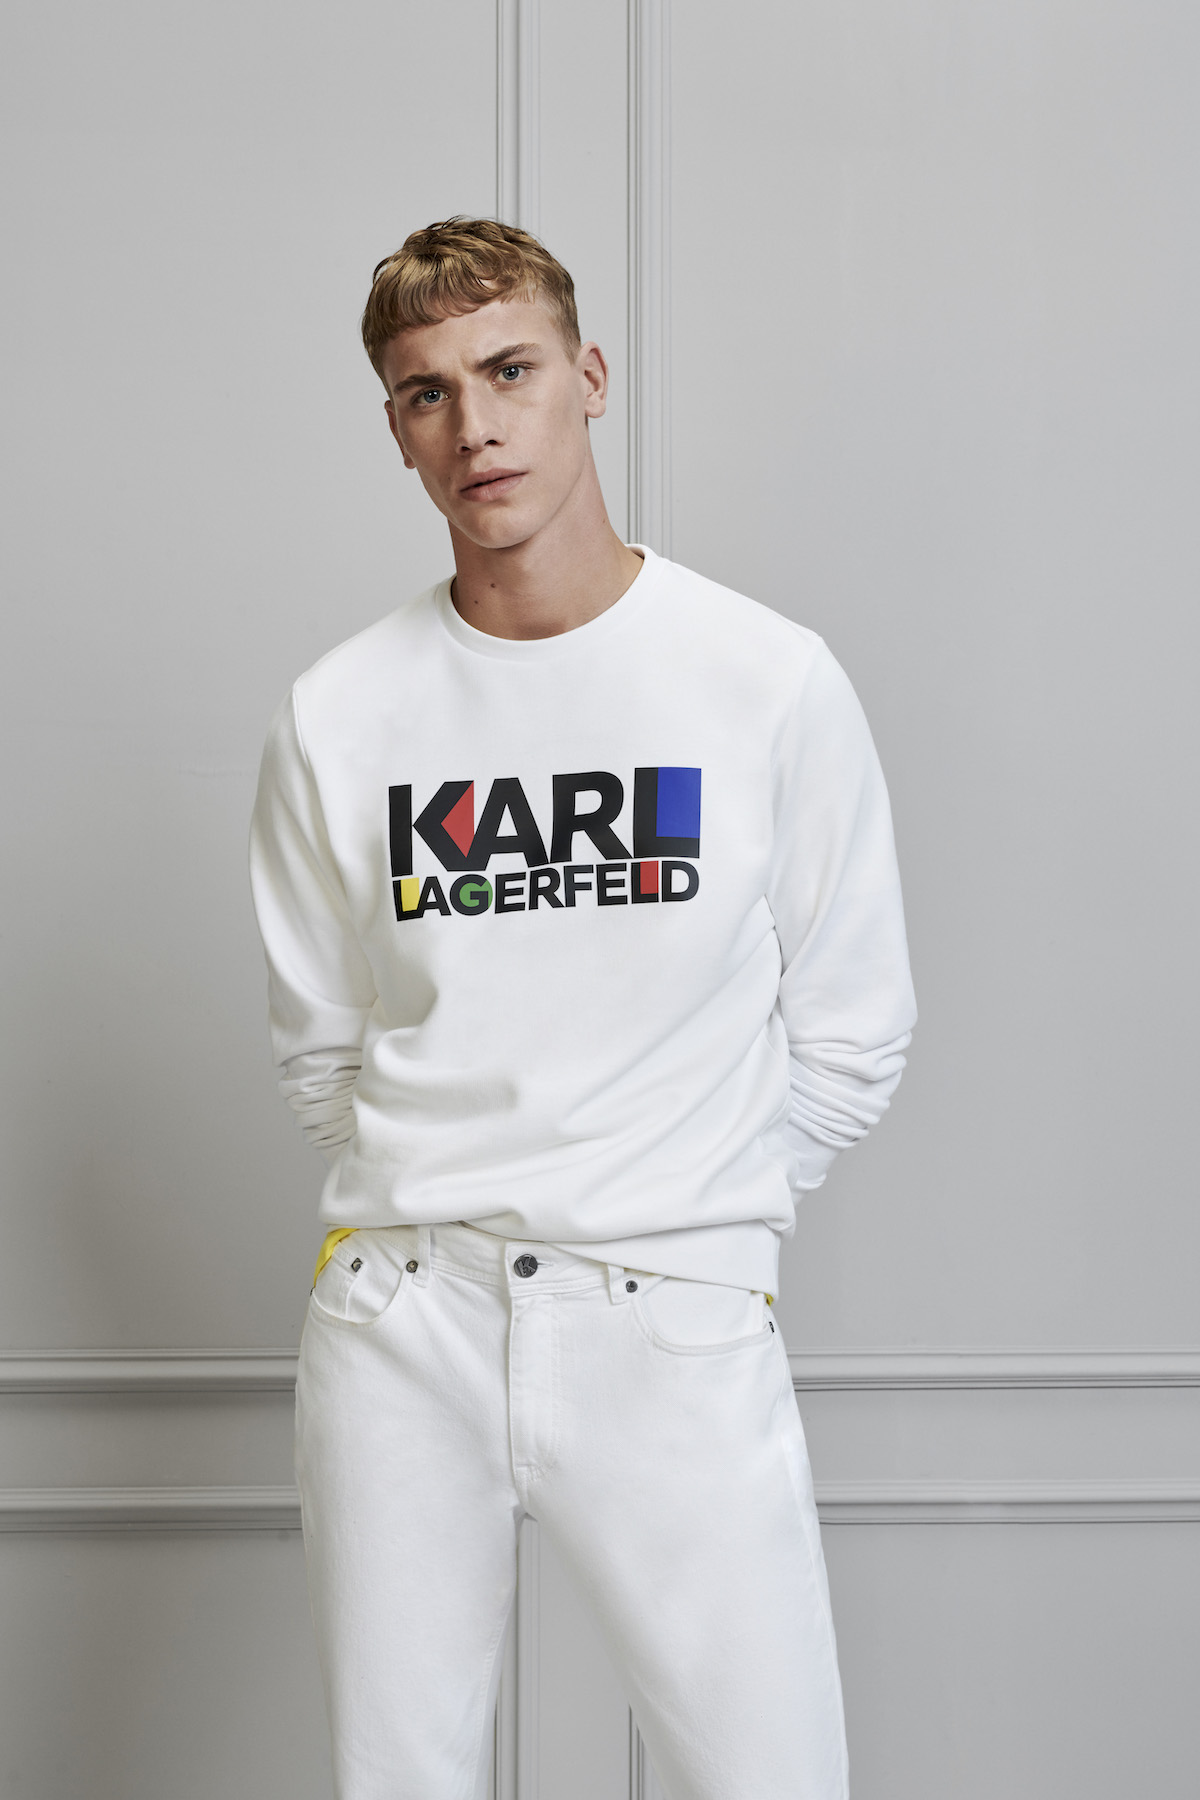 Karl Lagerfeld Unveils Spring/Summer 2020 Menswear Lookbook